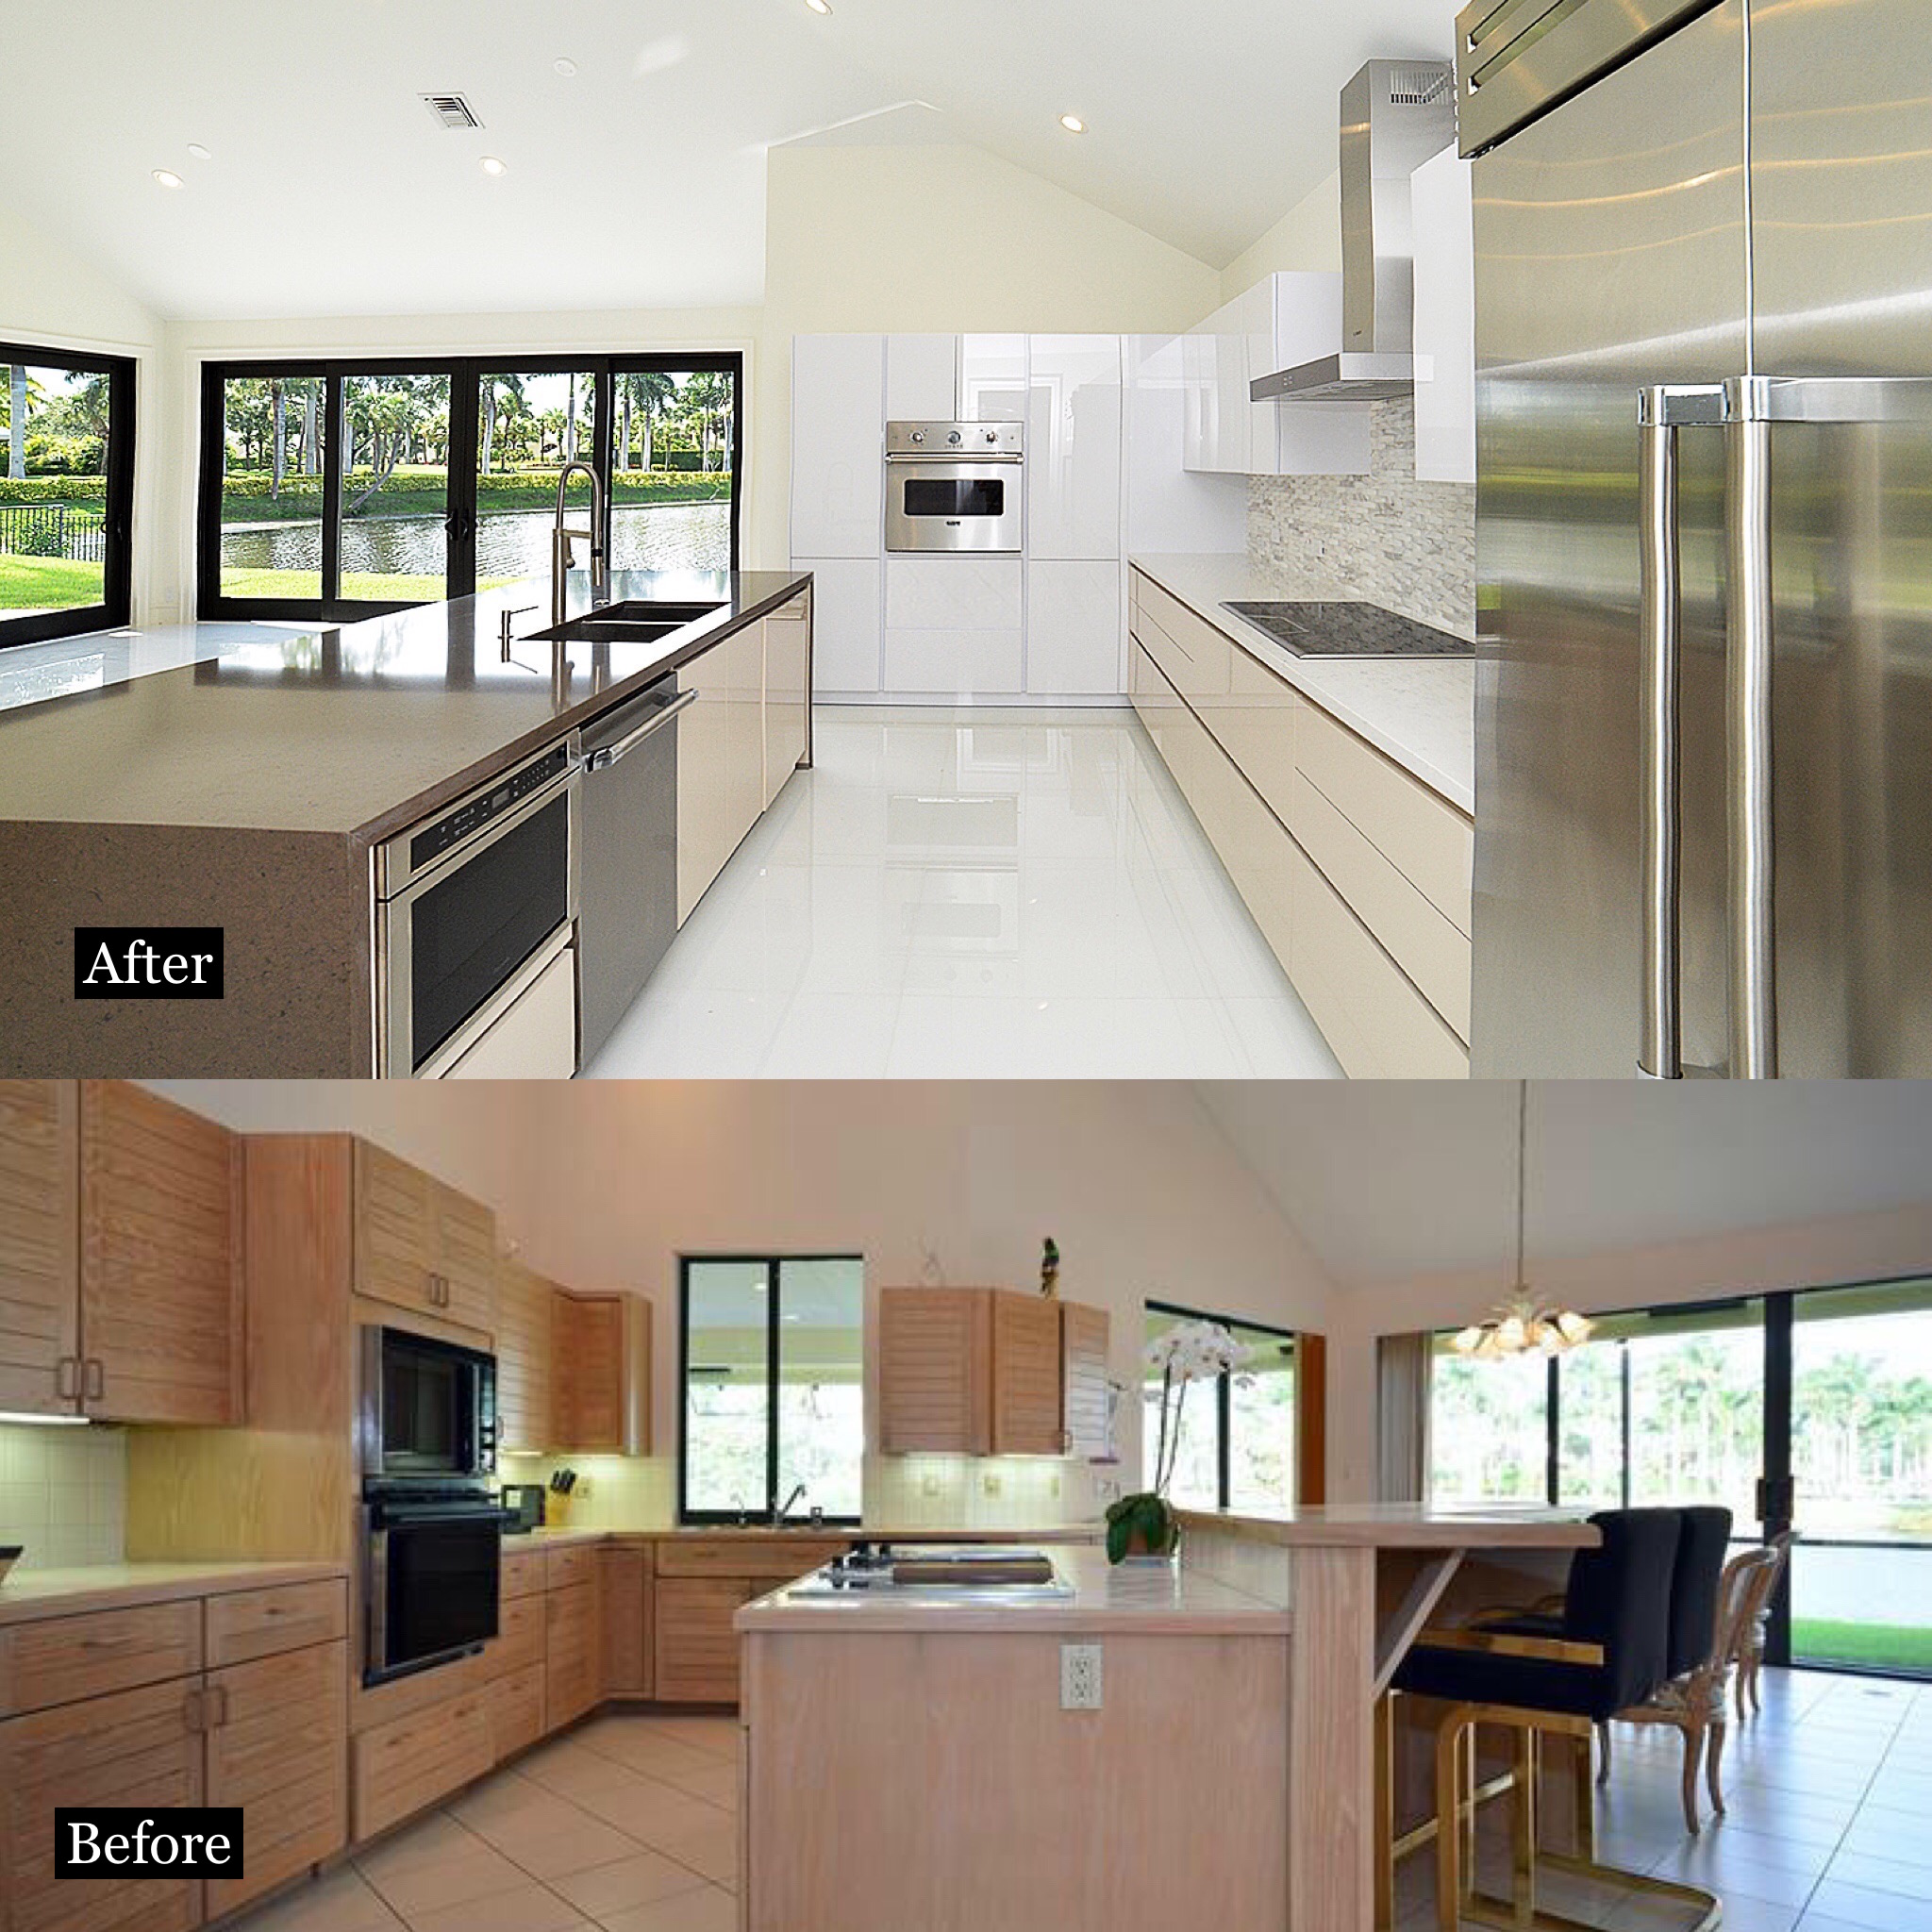 mag real estate & development transformation before after construction general contractor builder renovation south florida boca raton new custom luxury home for sale interior design st. andrews country club 7026 ayrshire lane 8.jpg